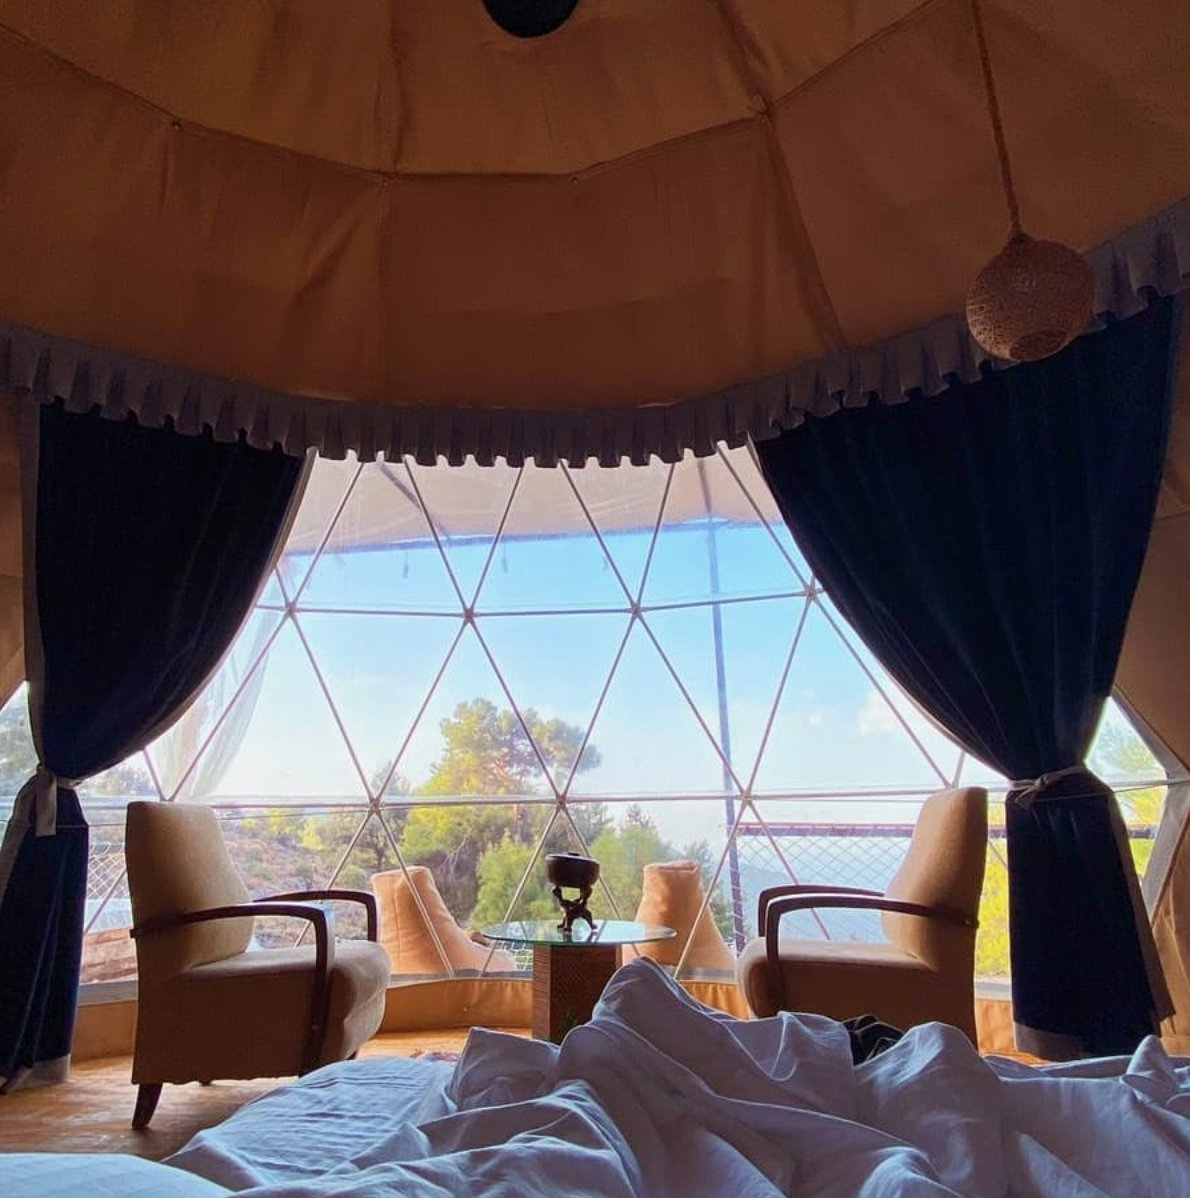 Turkdomes Glamping. (Photo from Instagram / @turkdomes)